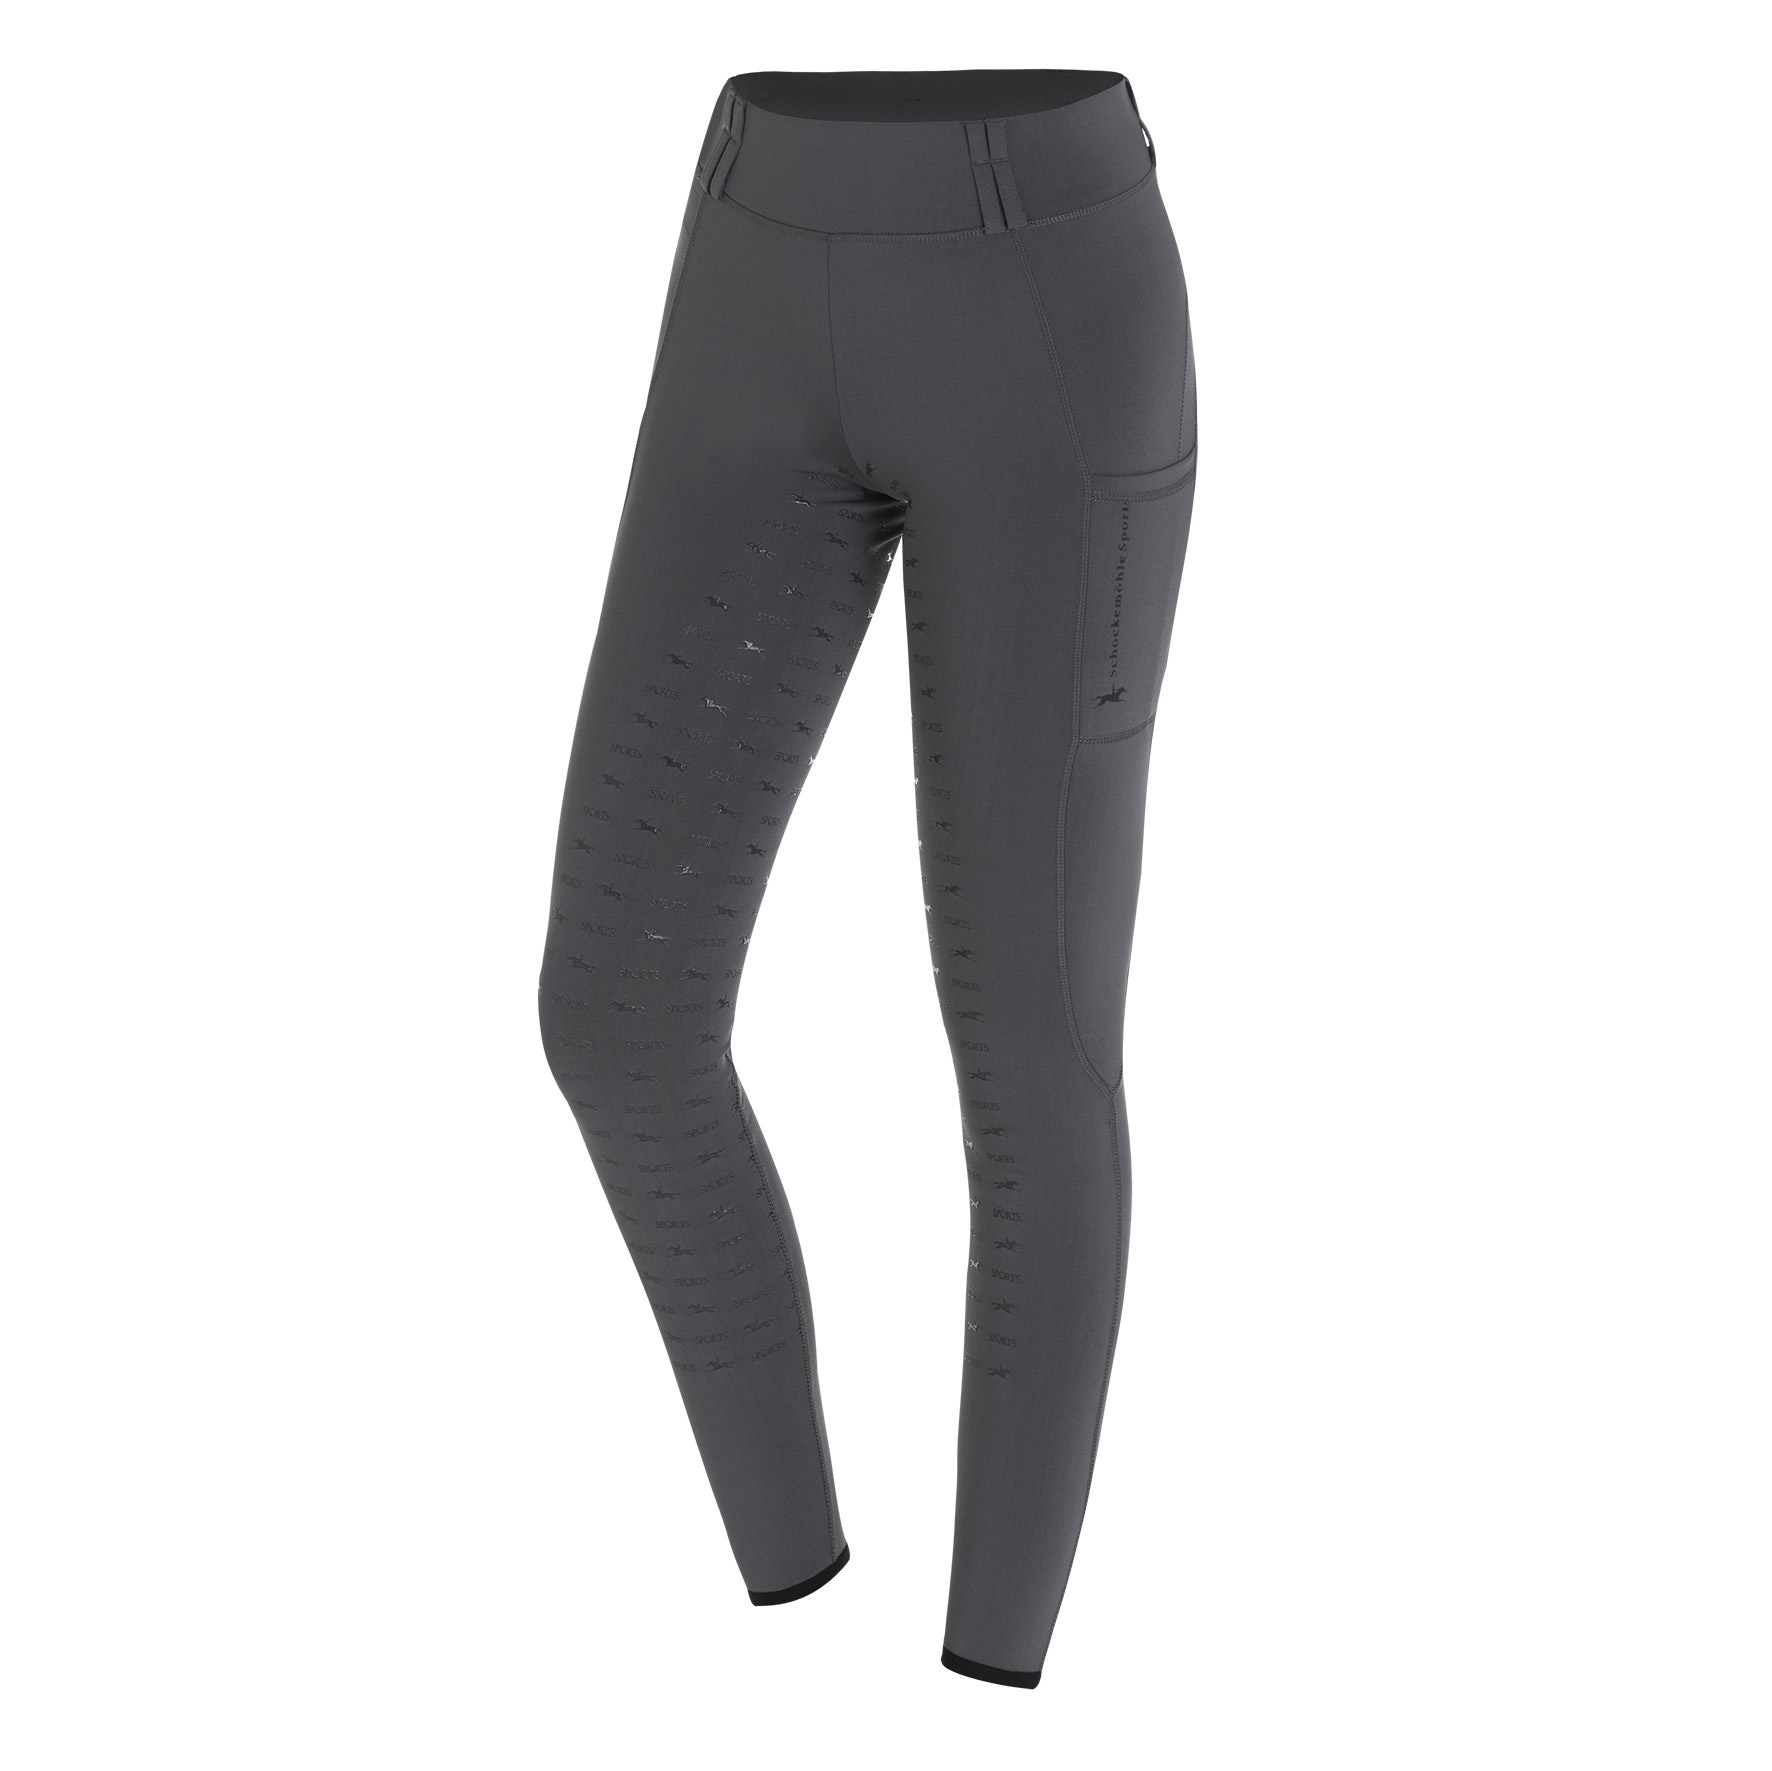 POCKET RIDING TIGHTS STYLE